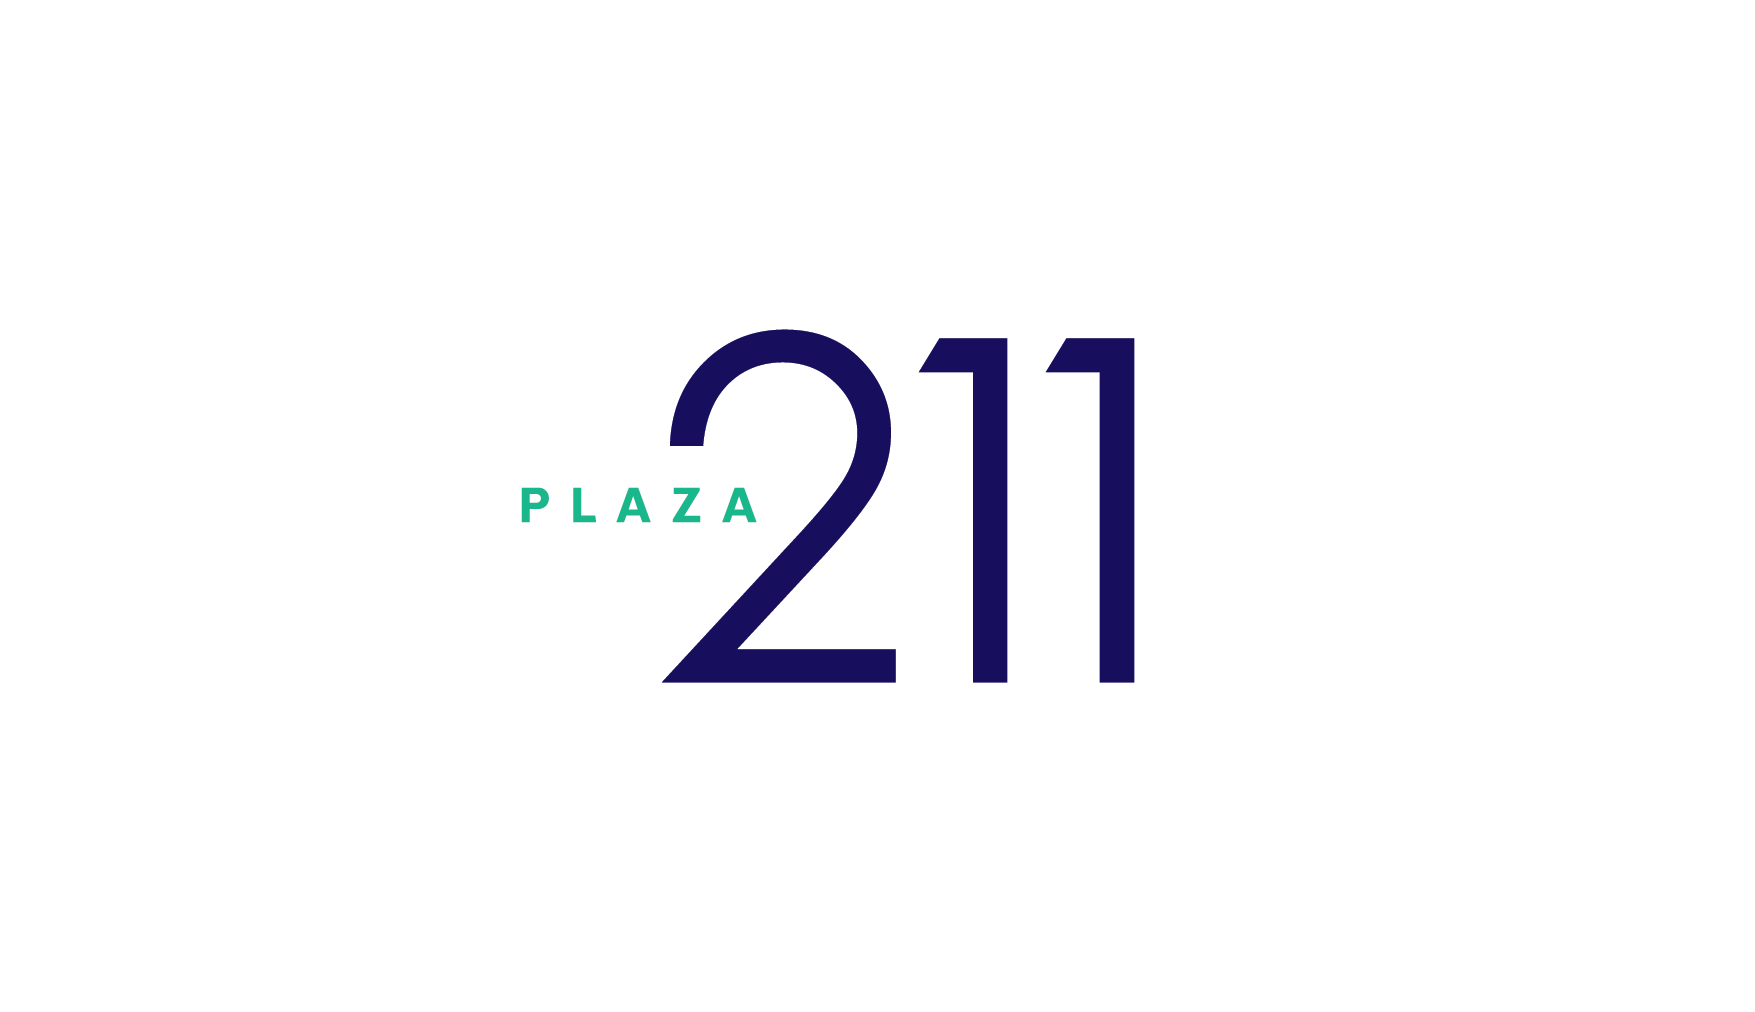 - Plaza 211 comprises an impressive 36,354 sq.ft. glazed four storey office building located in Blanchardstown Corporate Park. This energy efficient building has achieved an A2 energy rating and LEED Gold certification.